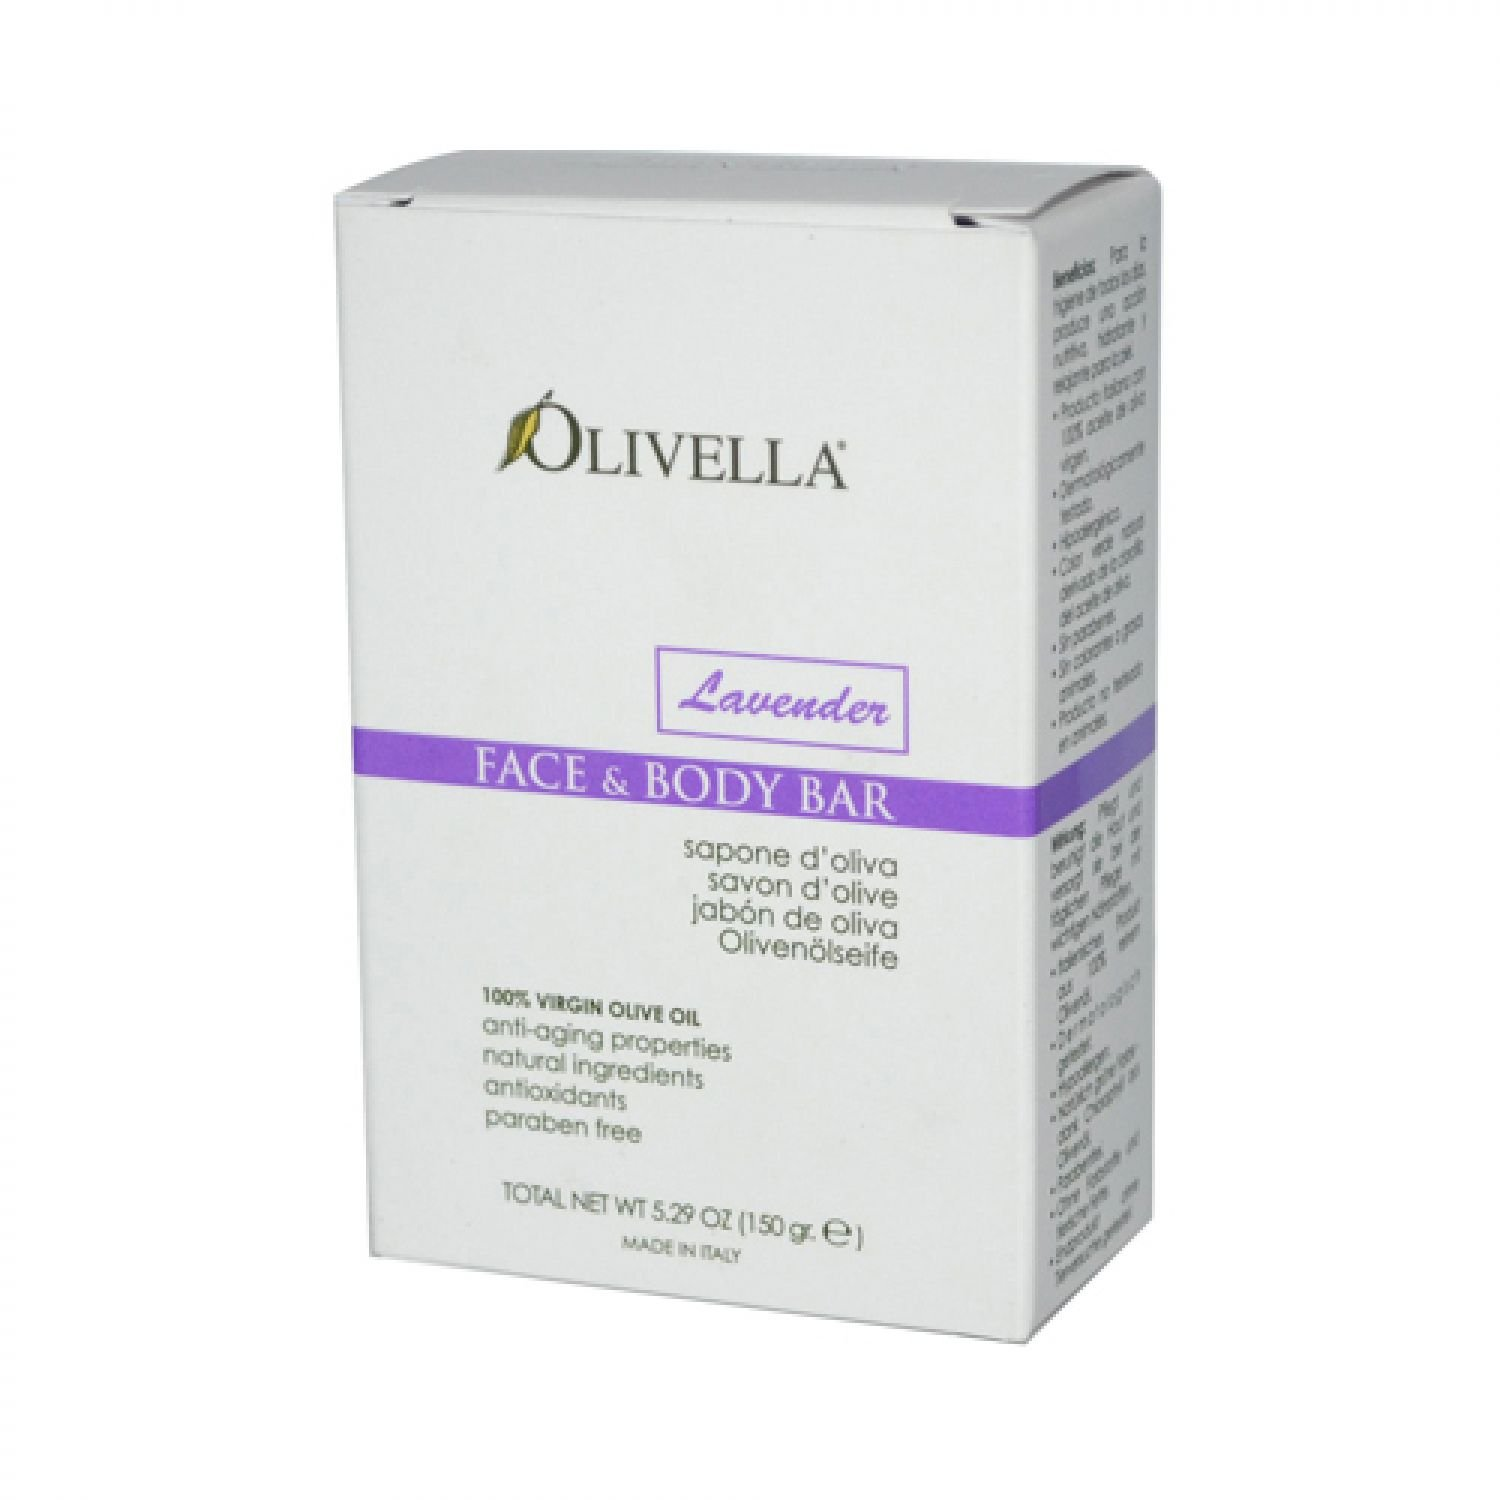 Olivella Face and Body Bar Soap, Lavender, 5.29 Ounce